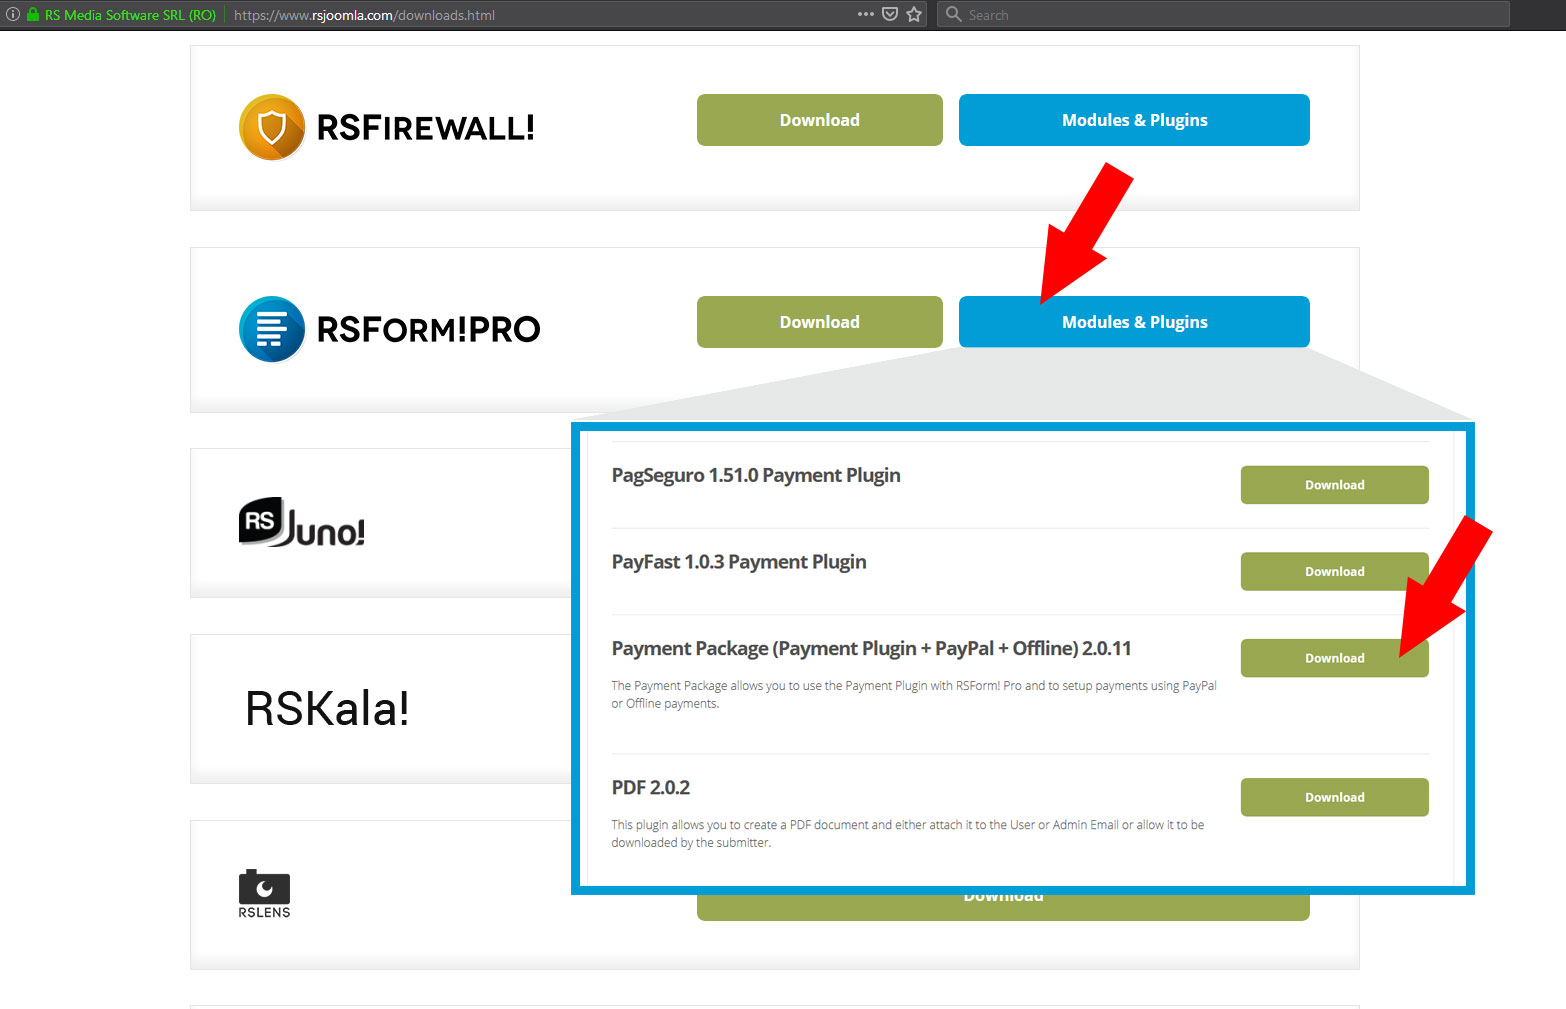 RSForm! Pro - New Payment Plugin